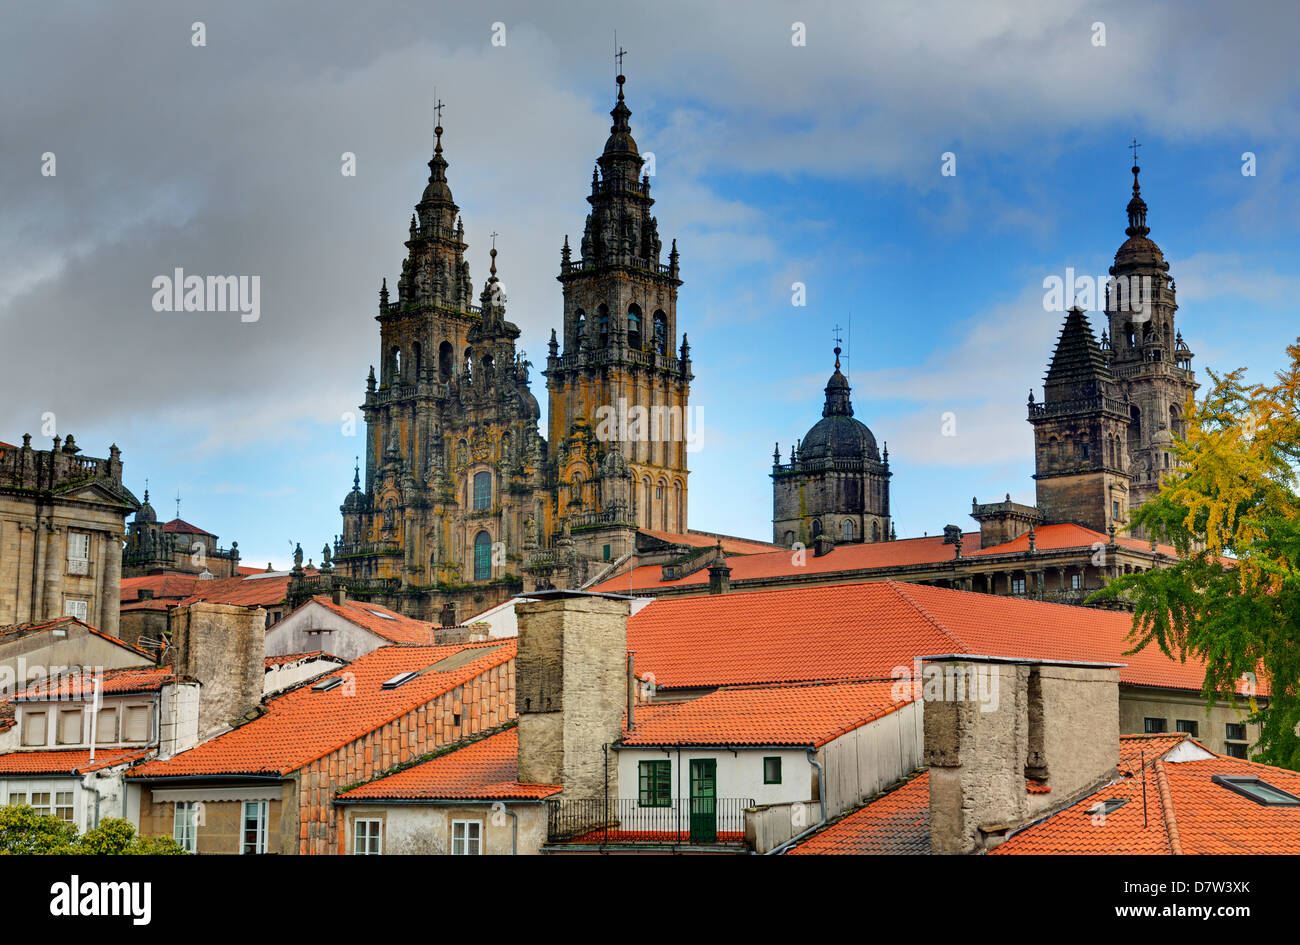 Cathedral spires in Old Town, Santiago de Compostela, UNESCO World Heritage Site, Galicia, Spain Stock Photo